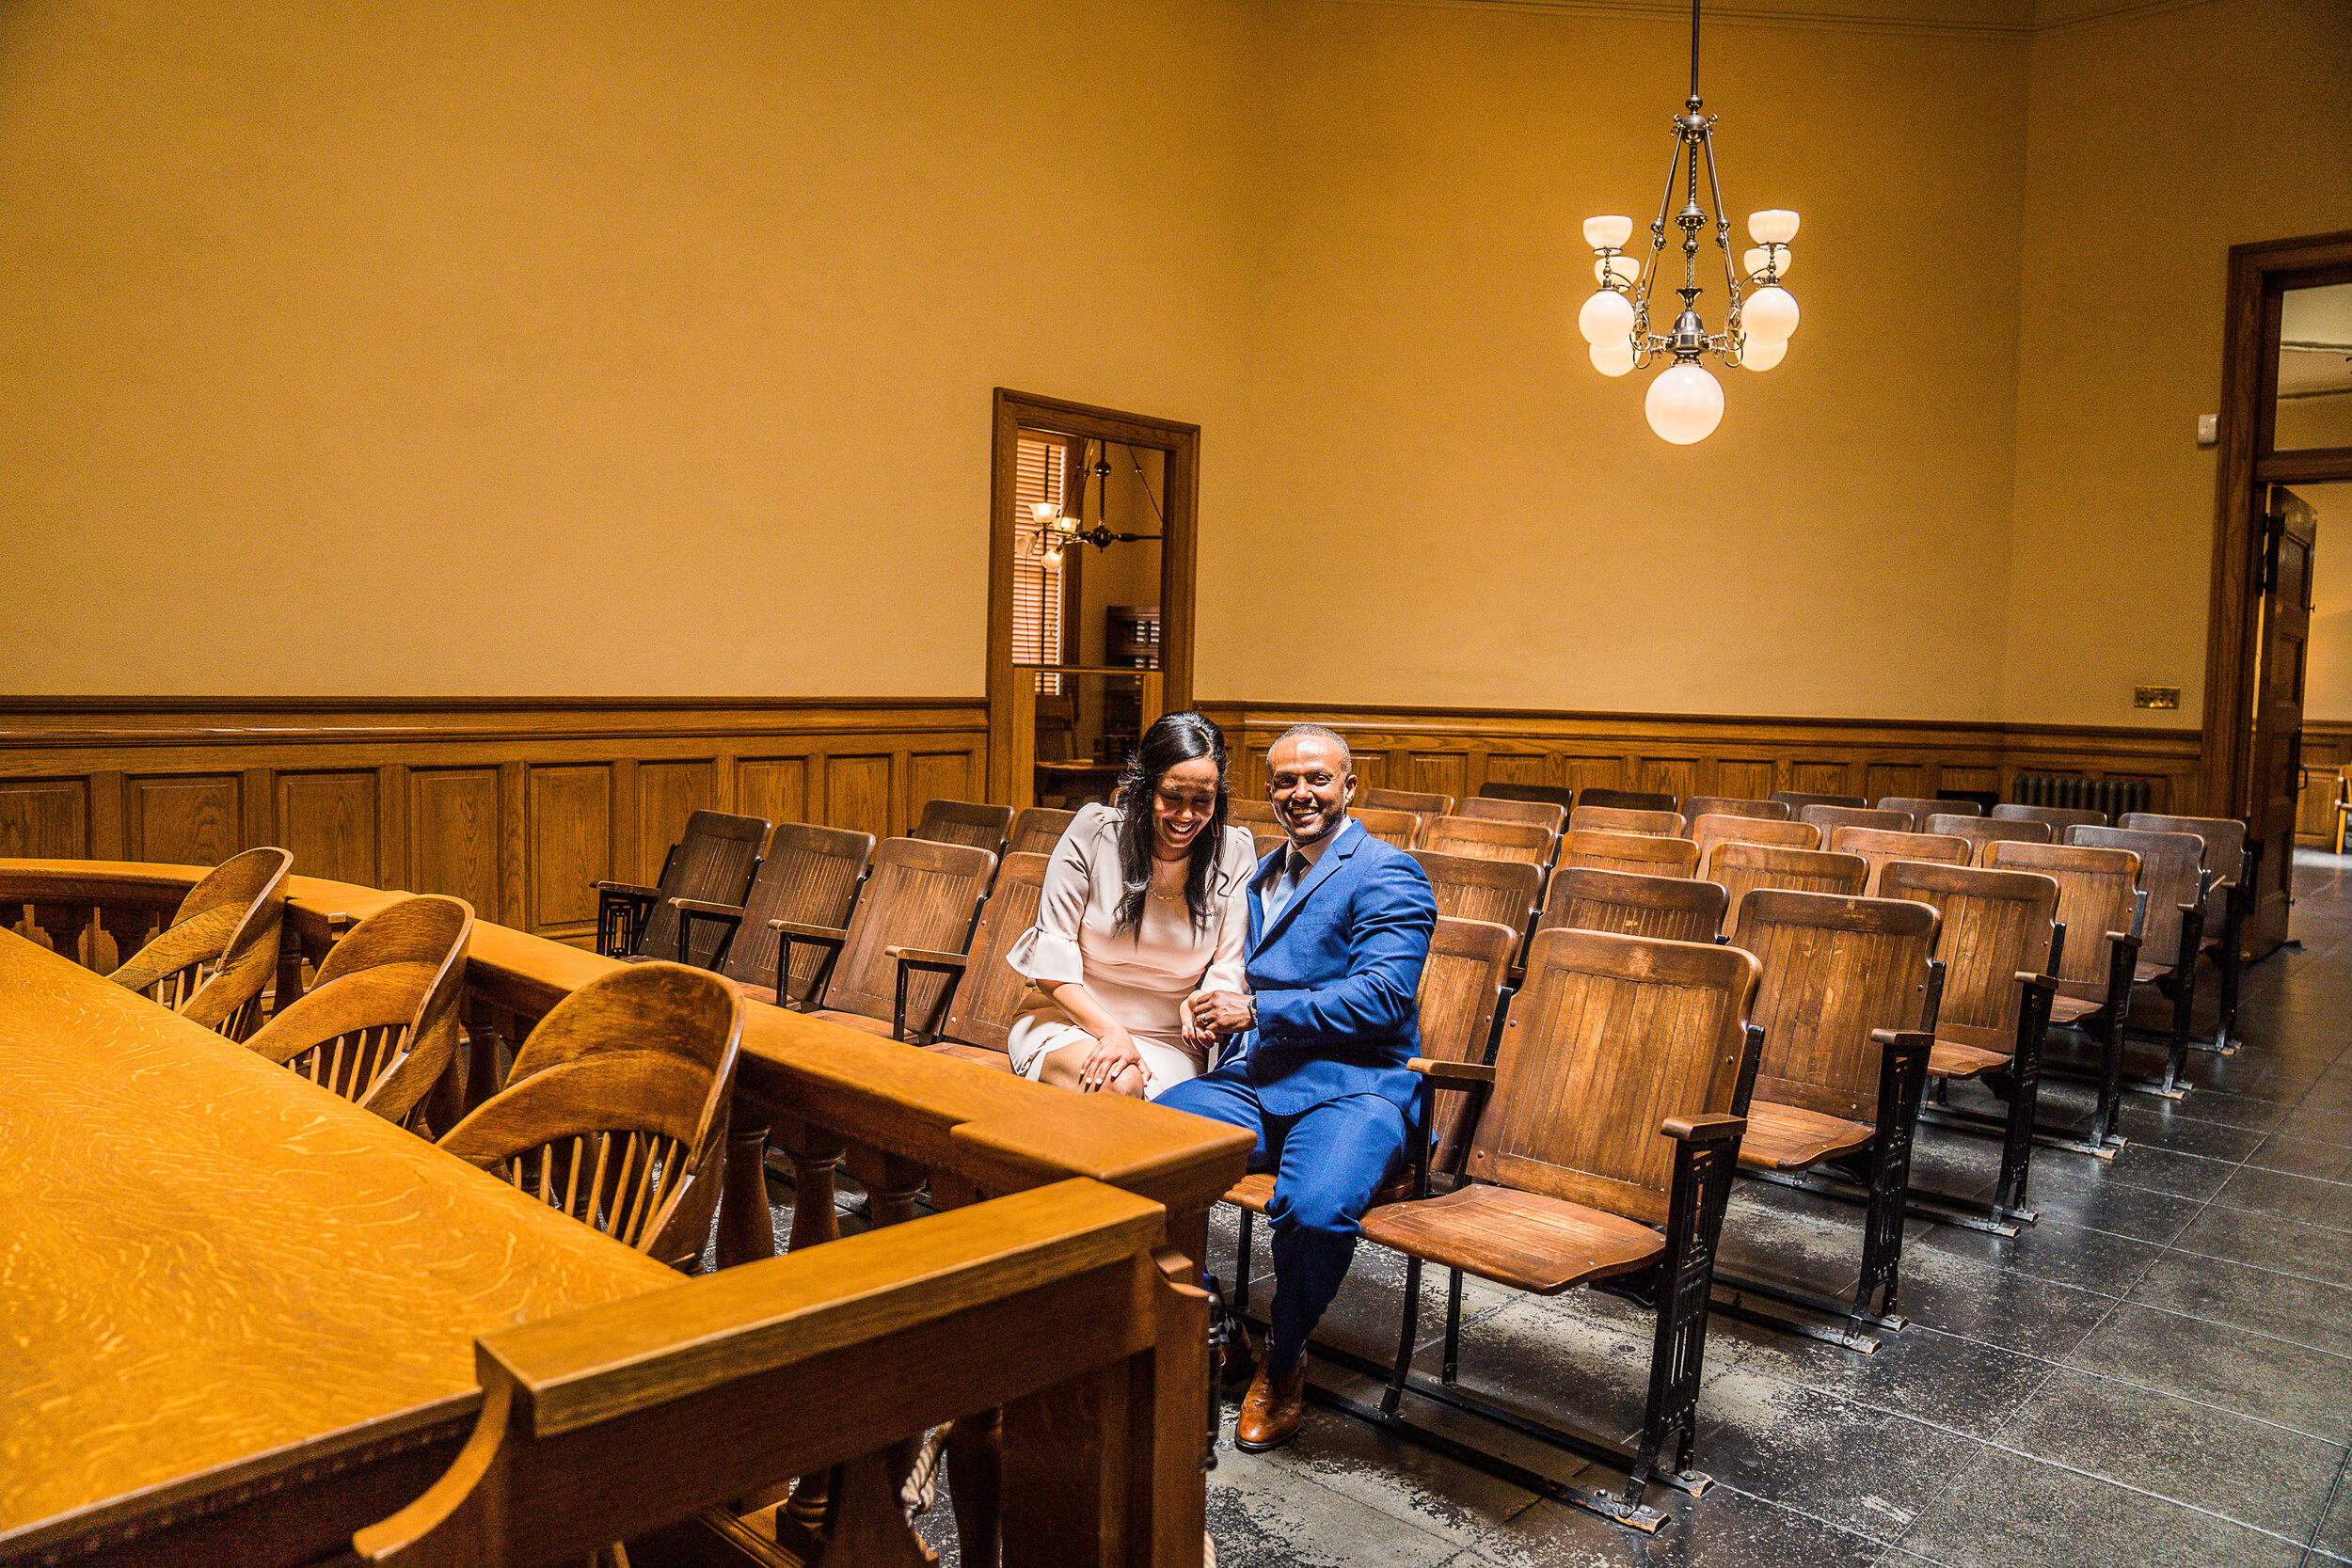 sewit-elopement-orange-county-santa-ana-courthouse-30.jpg